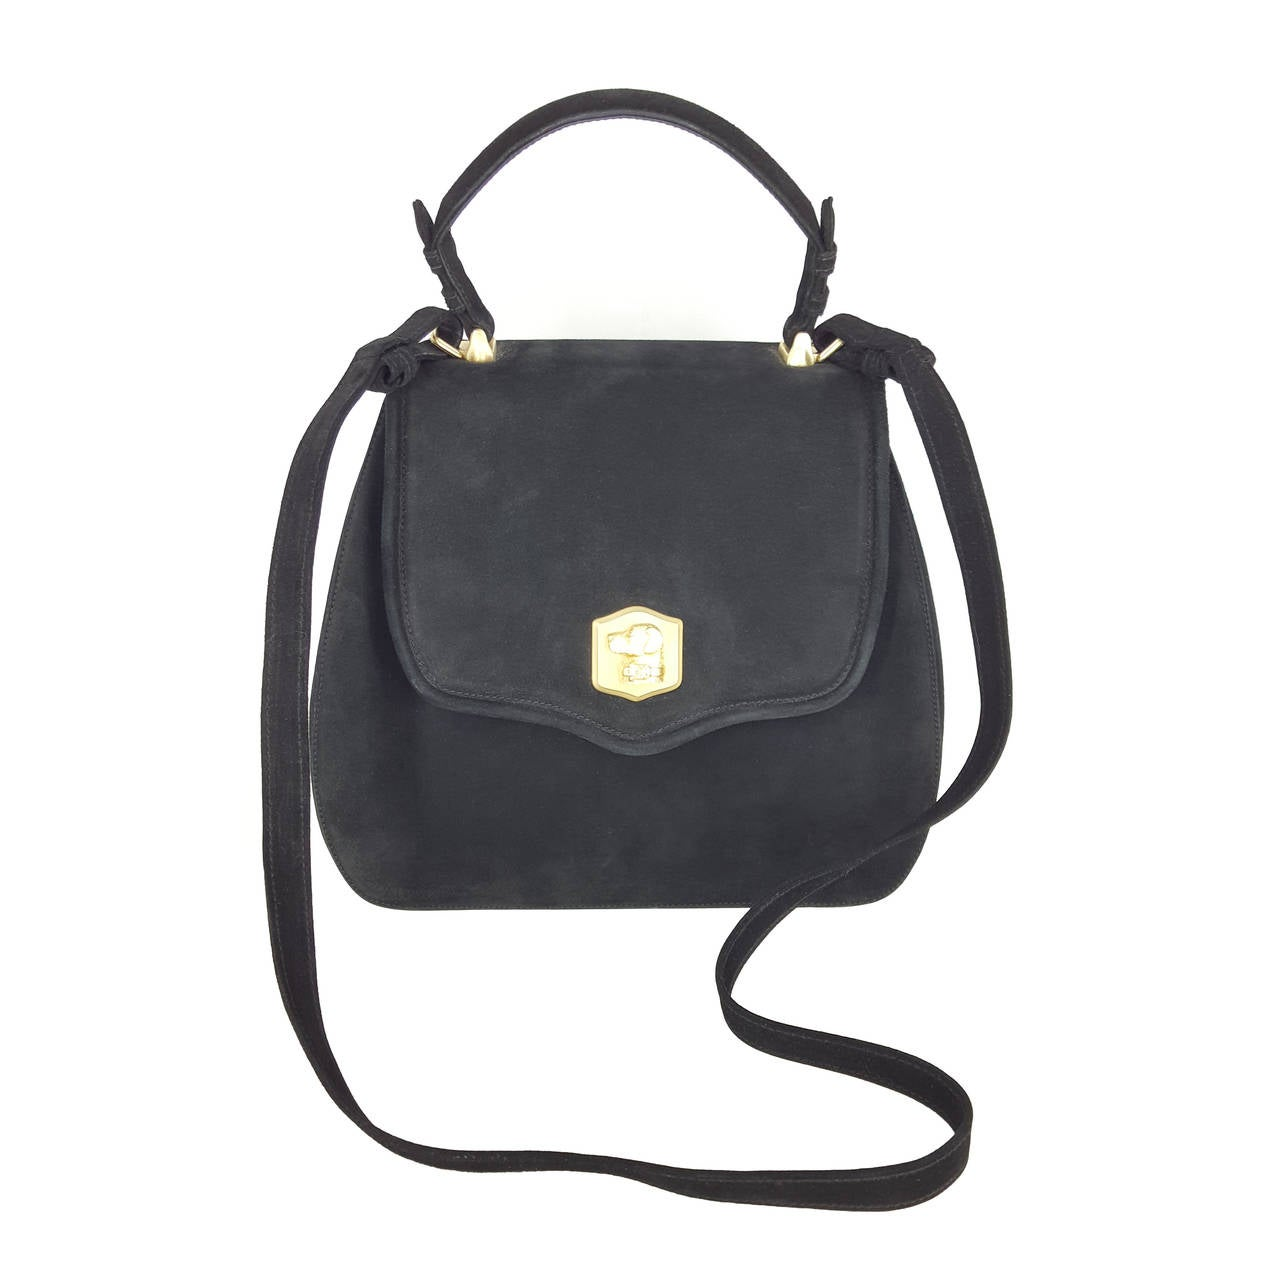 Kieselstein Cord Black Suede Large Trophy Bag With Labrador Closure.